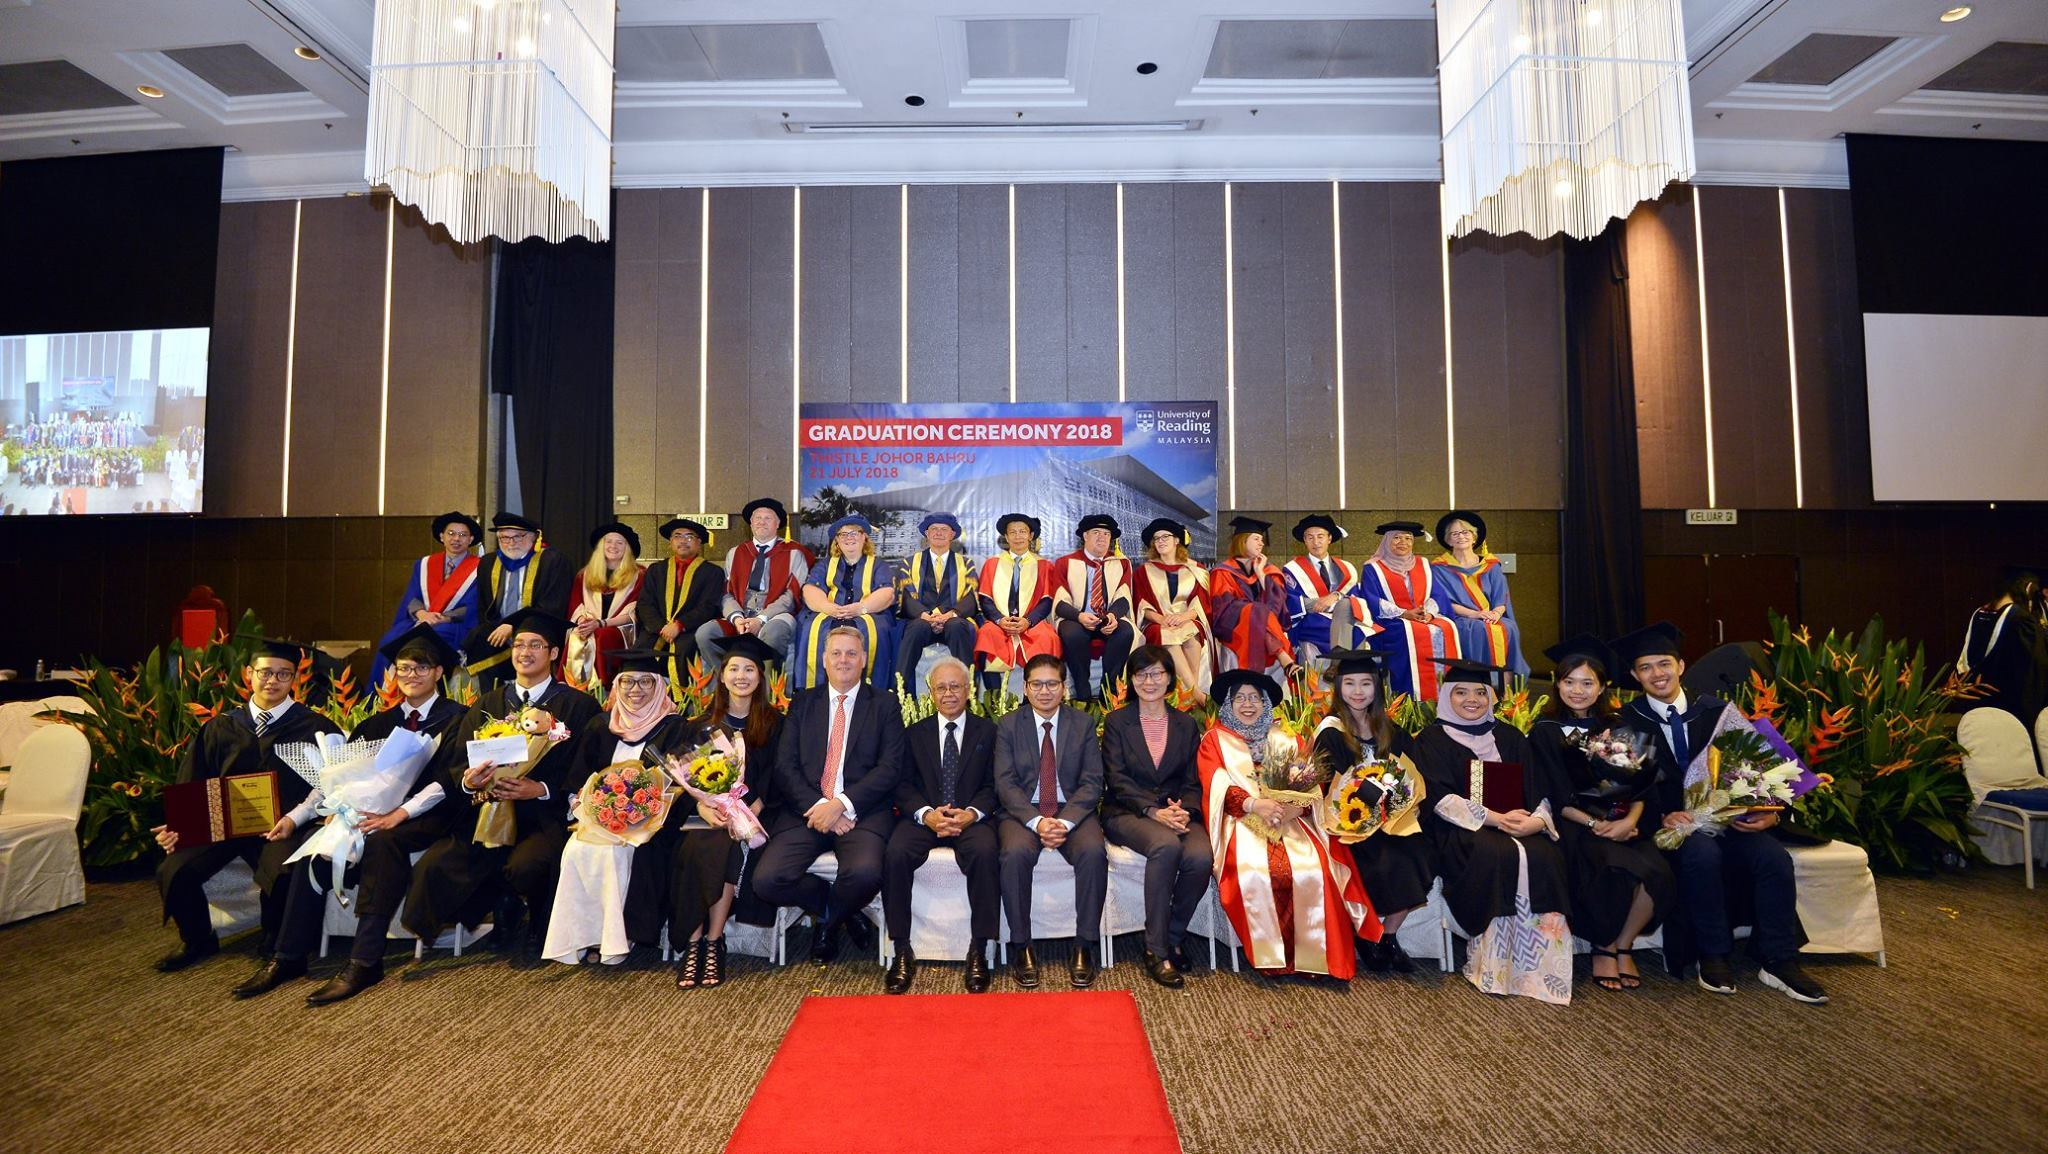 Graduation success for Malaysia students